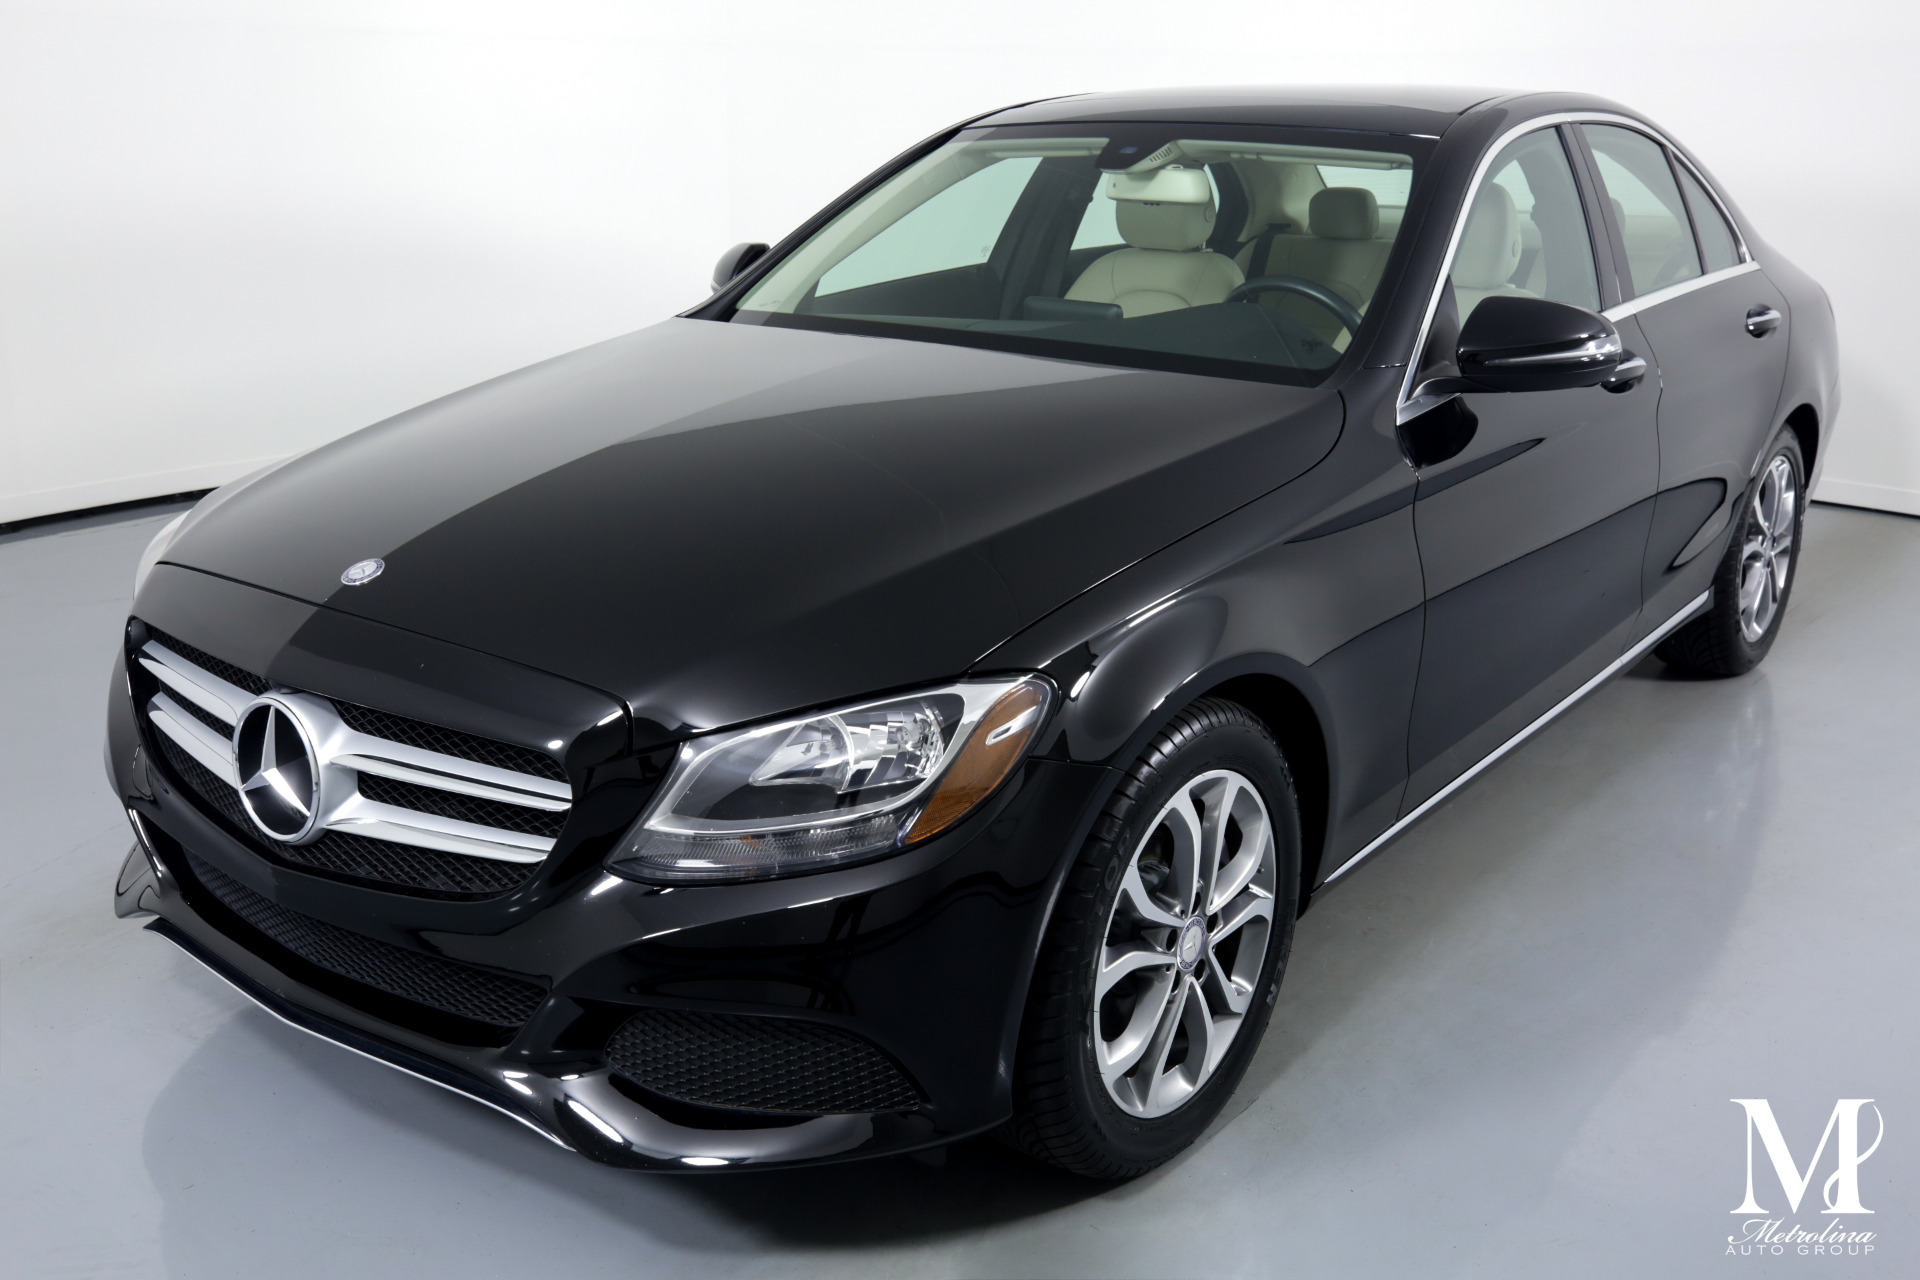 Used 2016 Mercedes-Benz C-Class C 300 for sale $23,456 at Metrolina Auto Group in Charlotte NC 28217 - 4